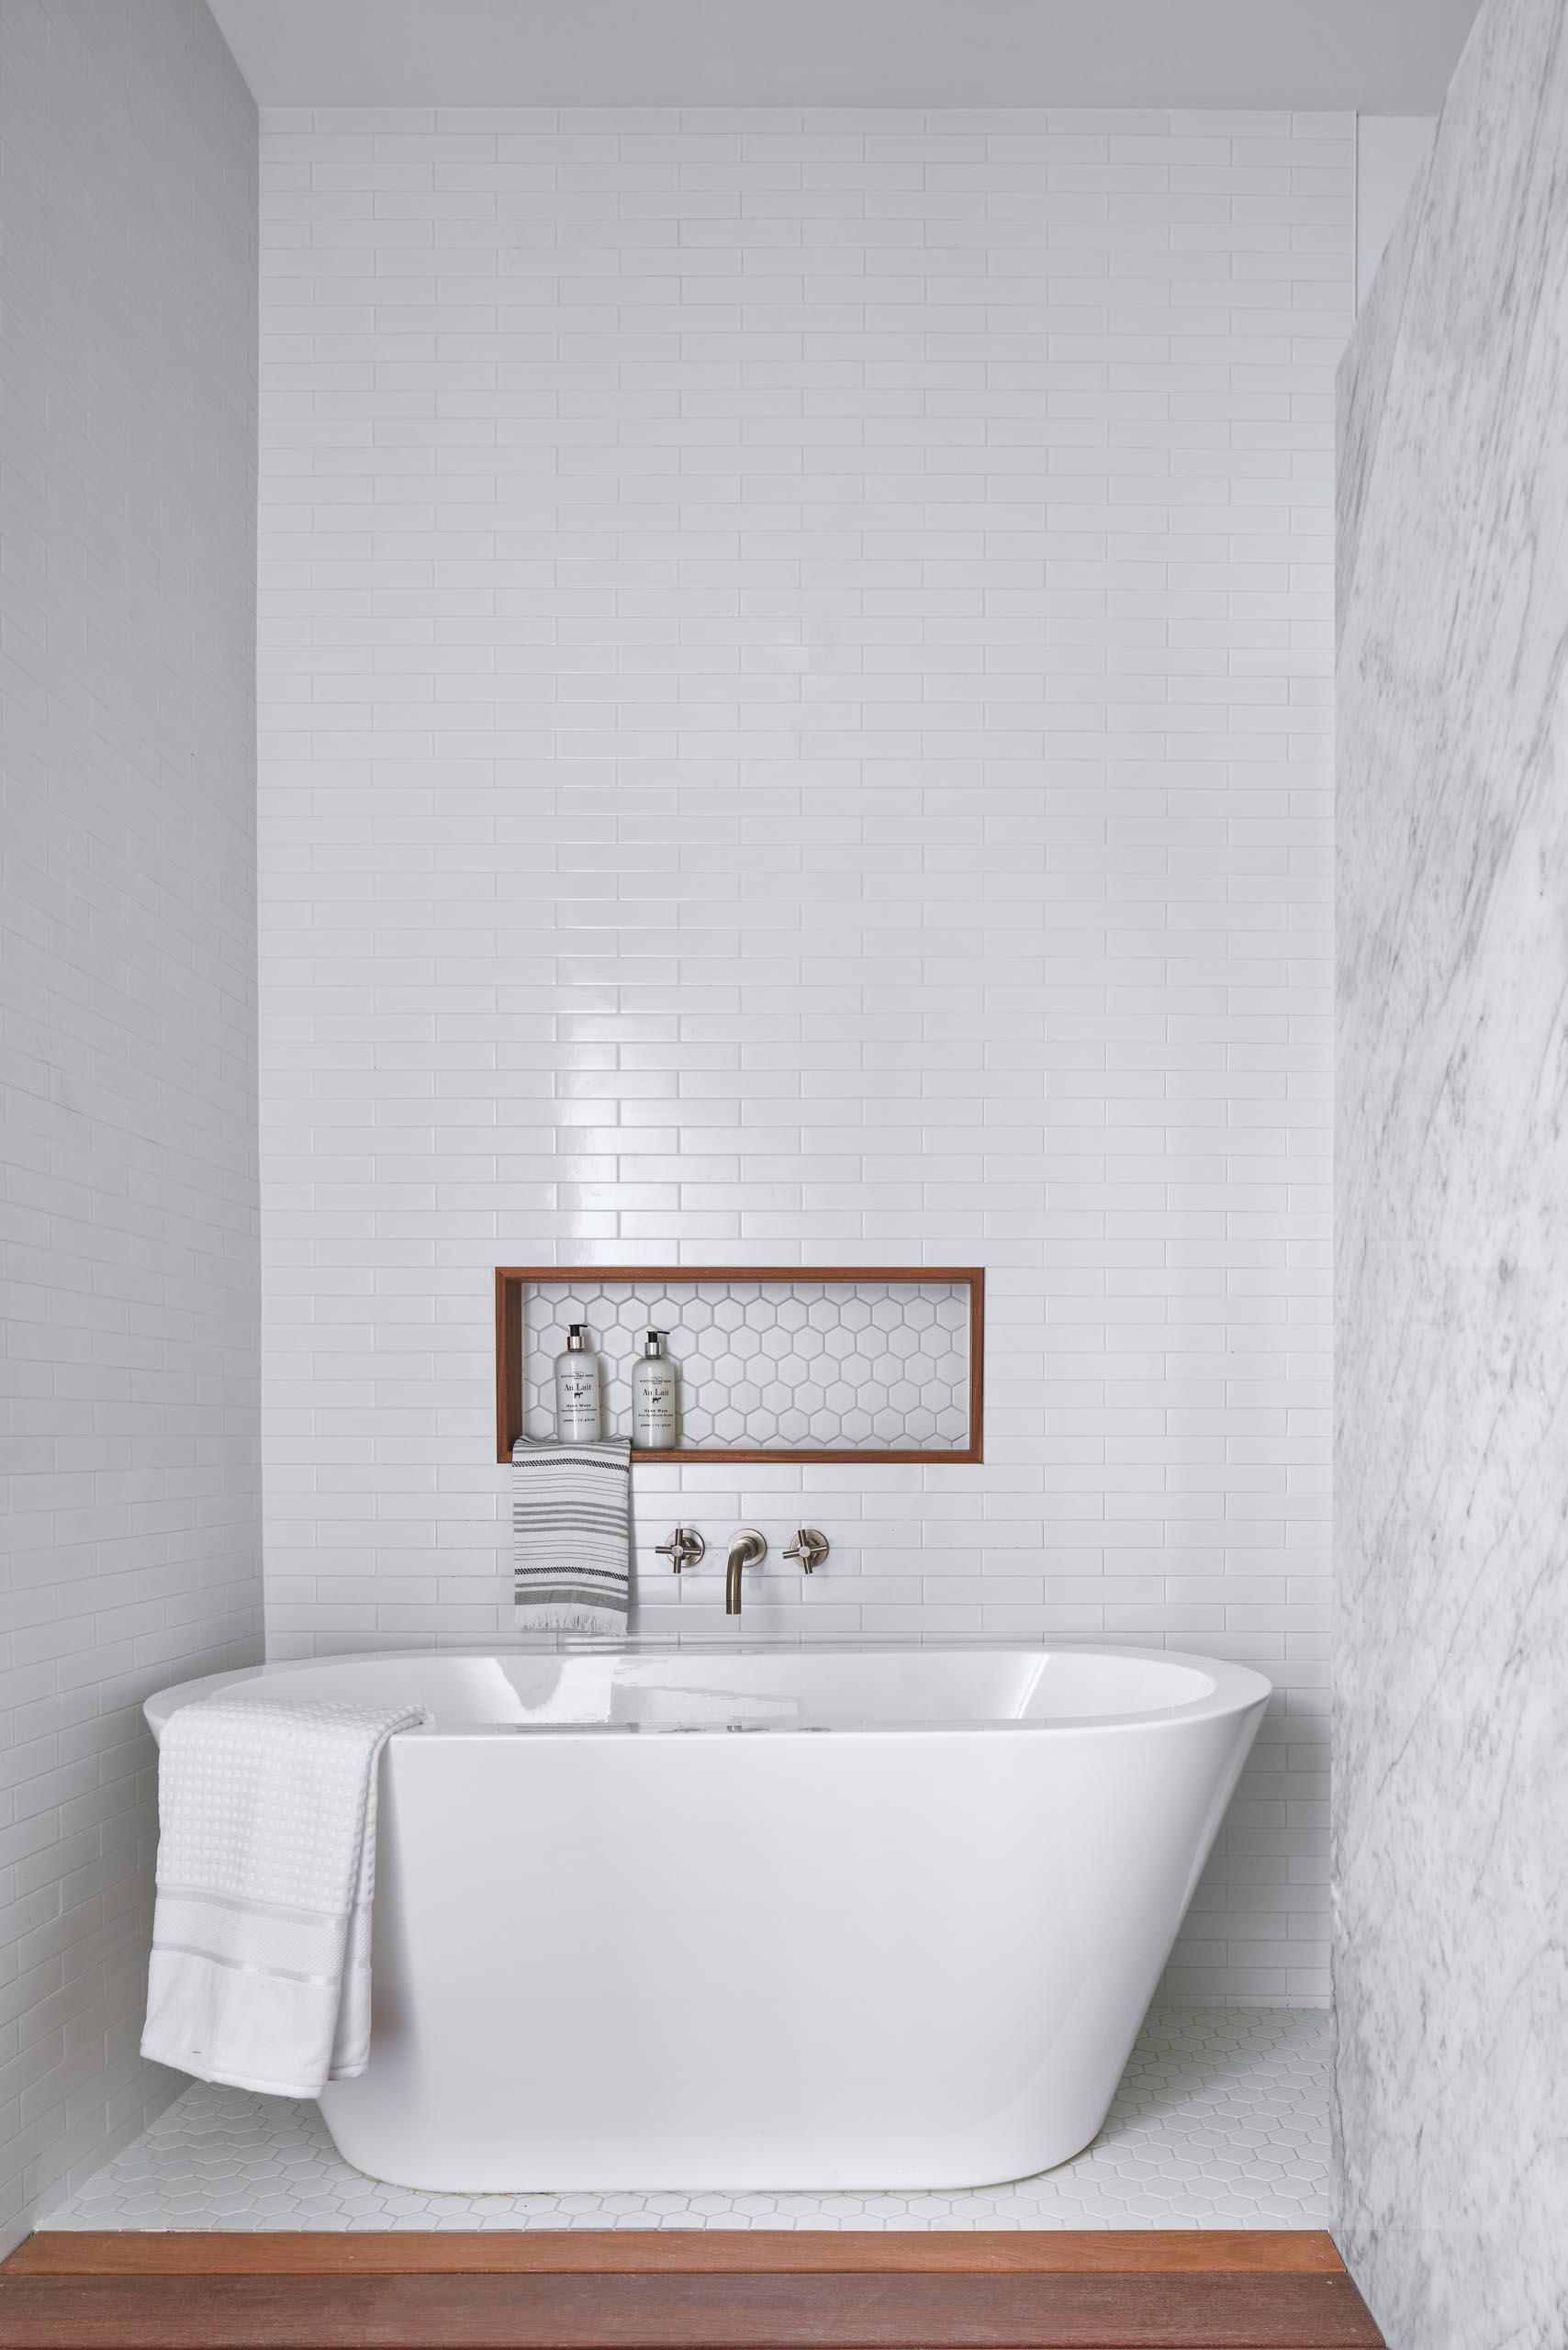 A wood lined niche above a freestanding white bathtub.